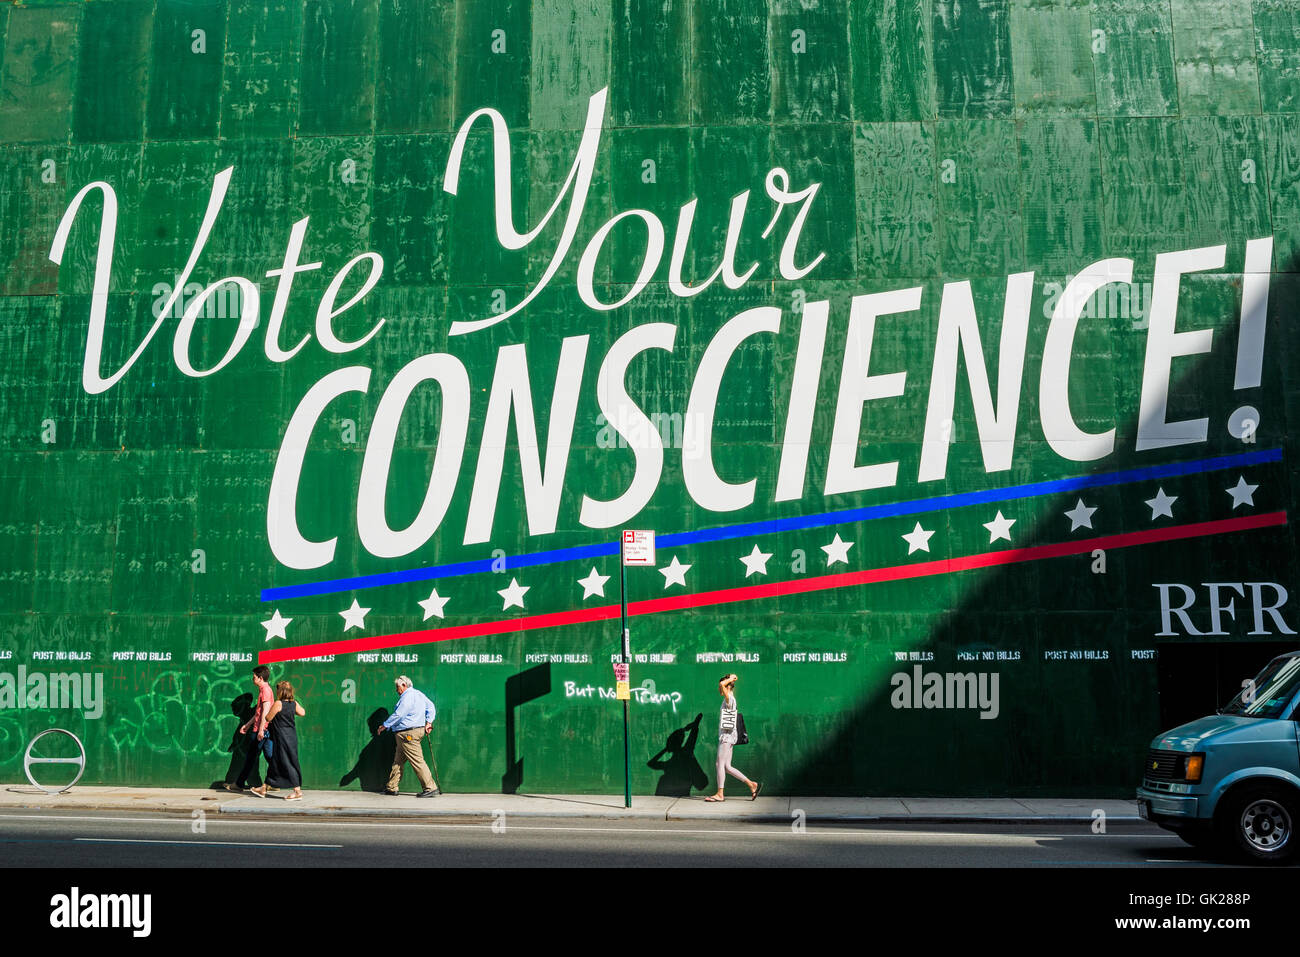 New York, USA 17 August 2016 - Developer Aby Rosen billboarrd avdertisement quoting former presidential candidate - Stock Image